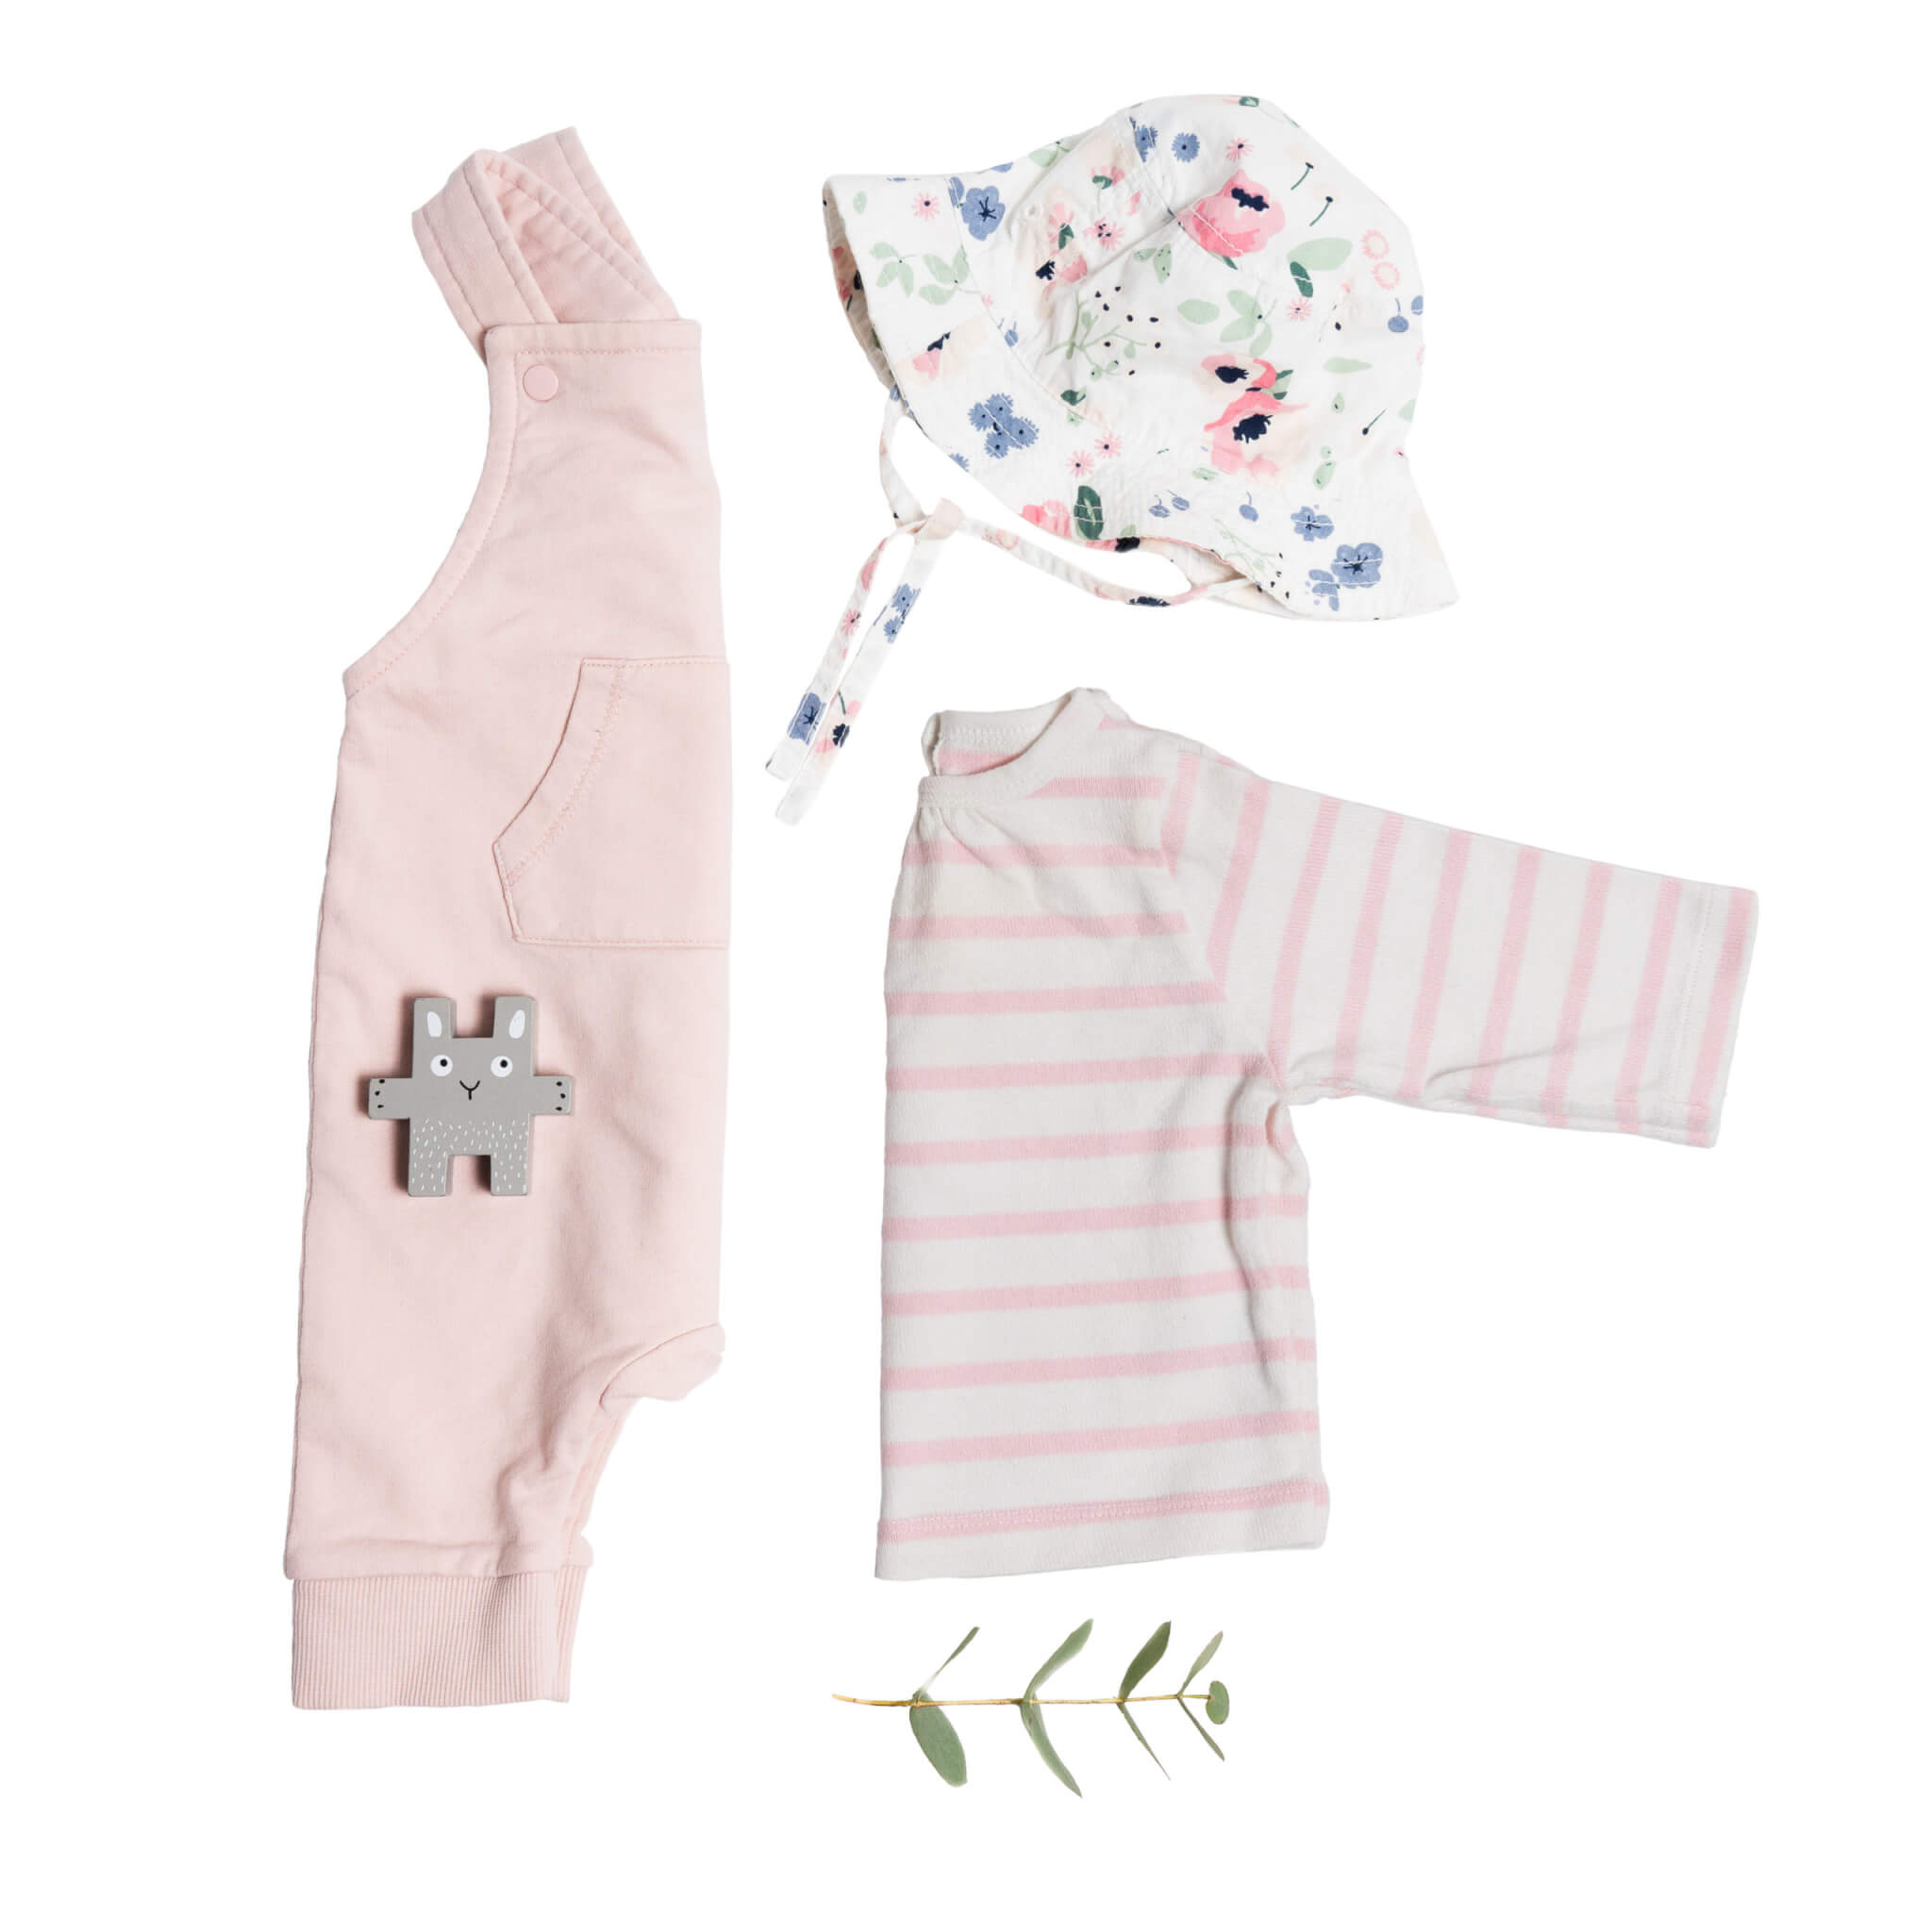 tenue occasion bébé fille girly